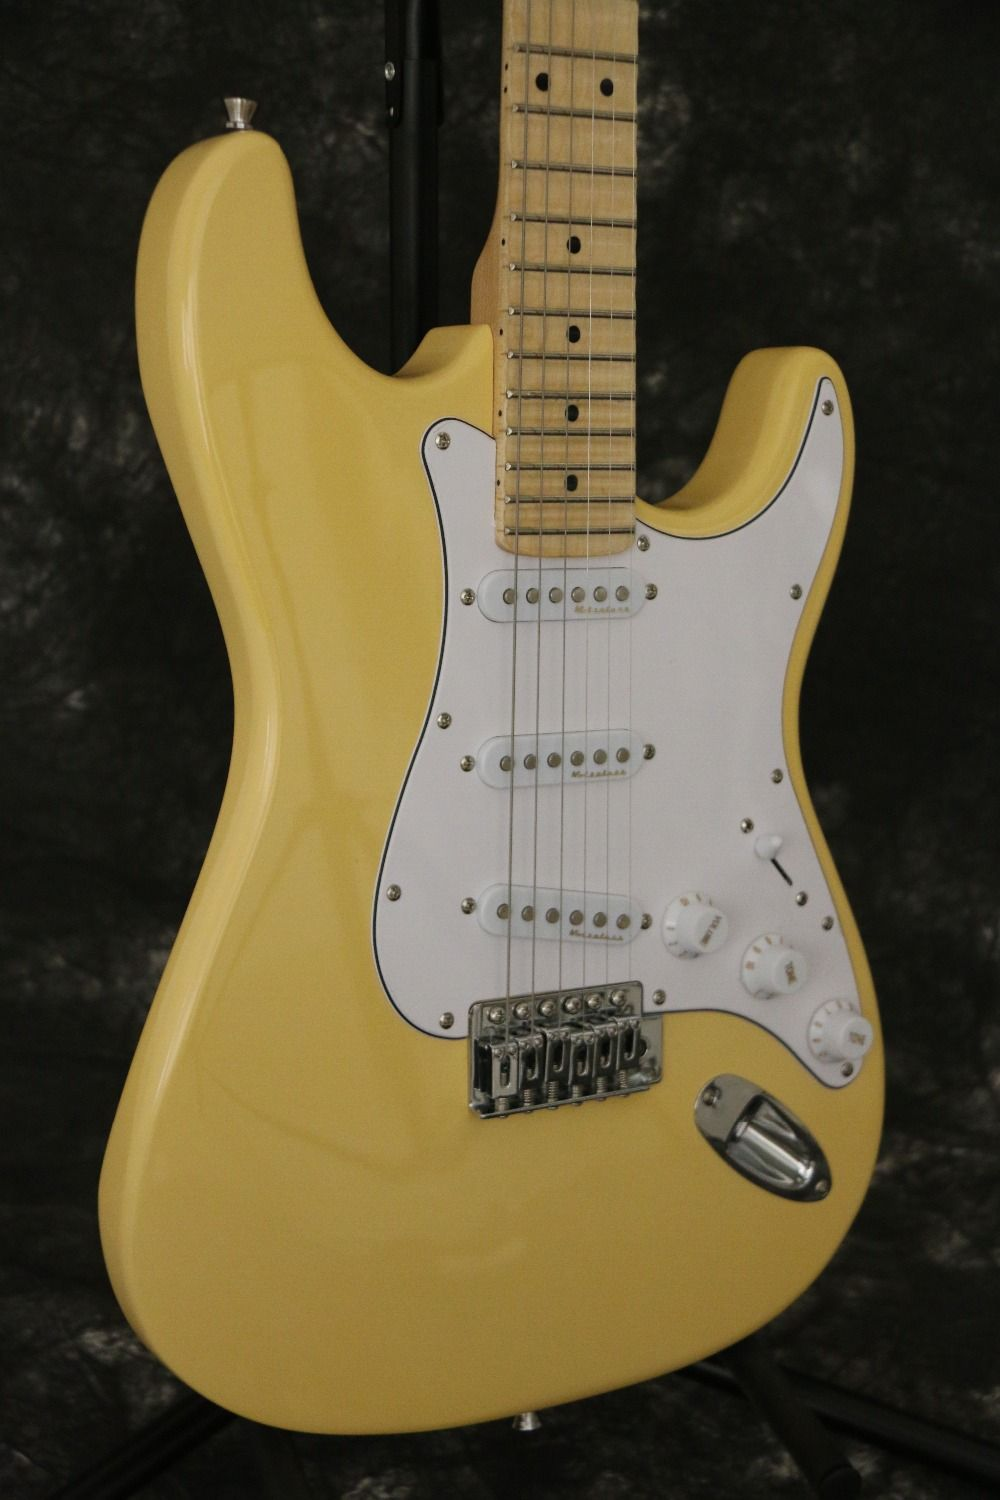 Hot sell good quality FD ST Yngwie Malmsteen electric guitar scalloped fingerboard bighead basswood body standard size